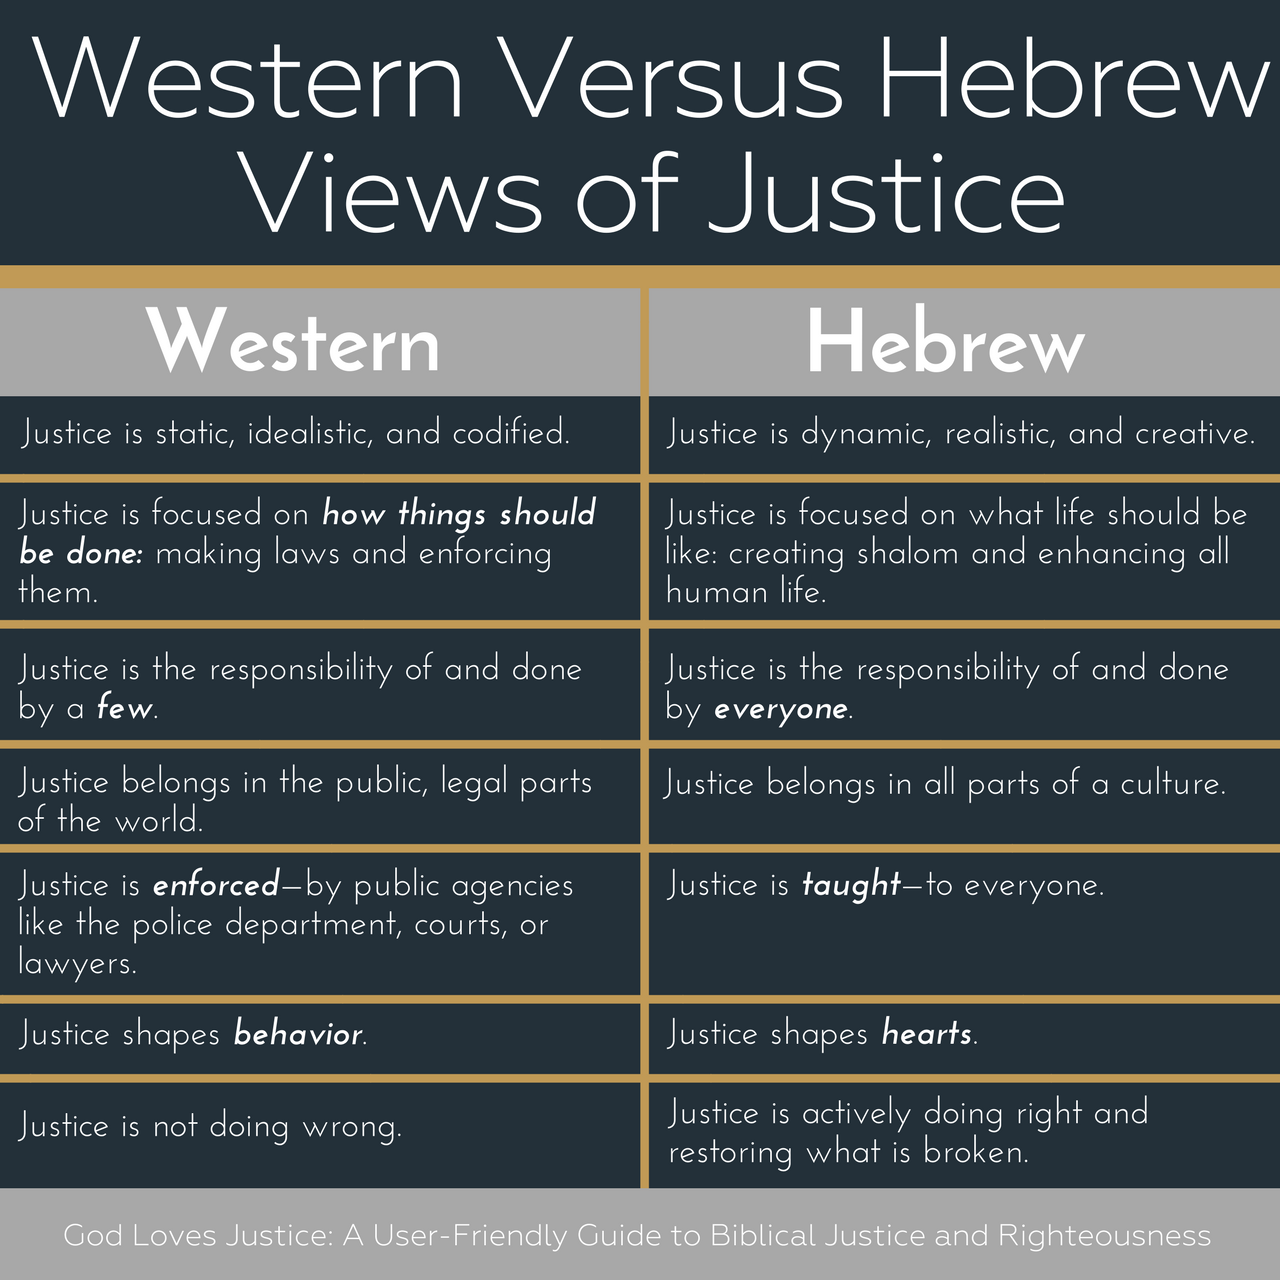 A summary of the ways that the Western-ish and Hebraic views of justice are different